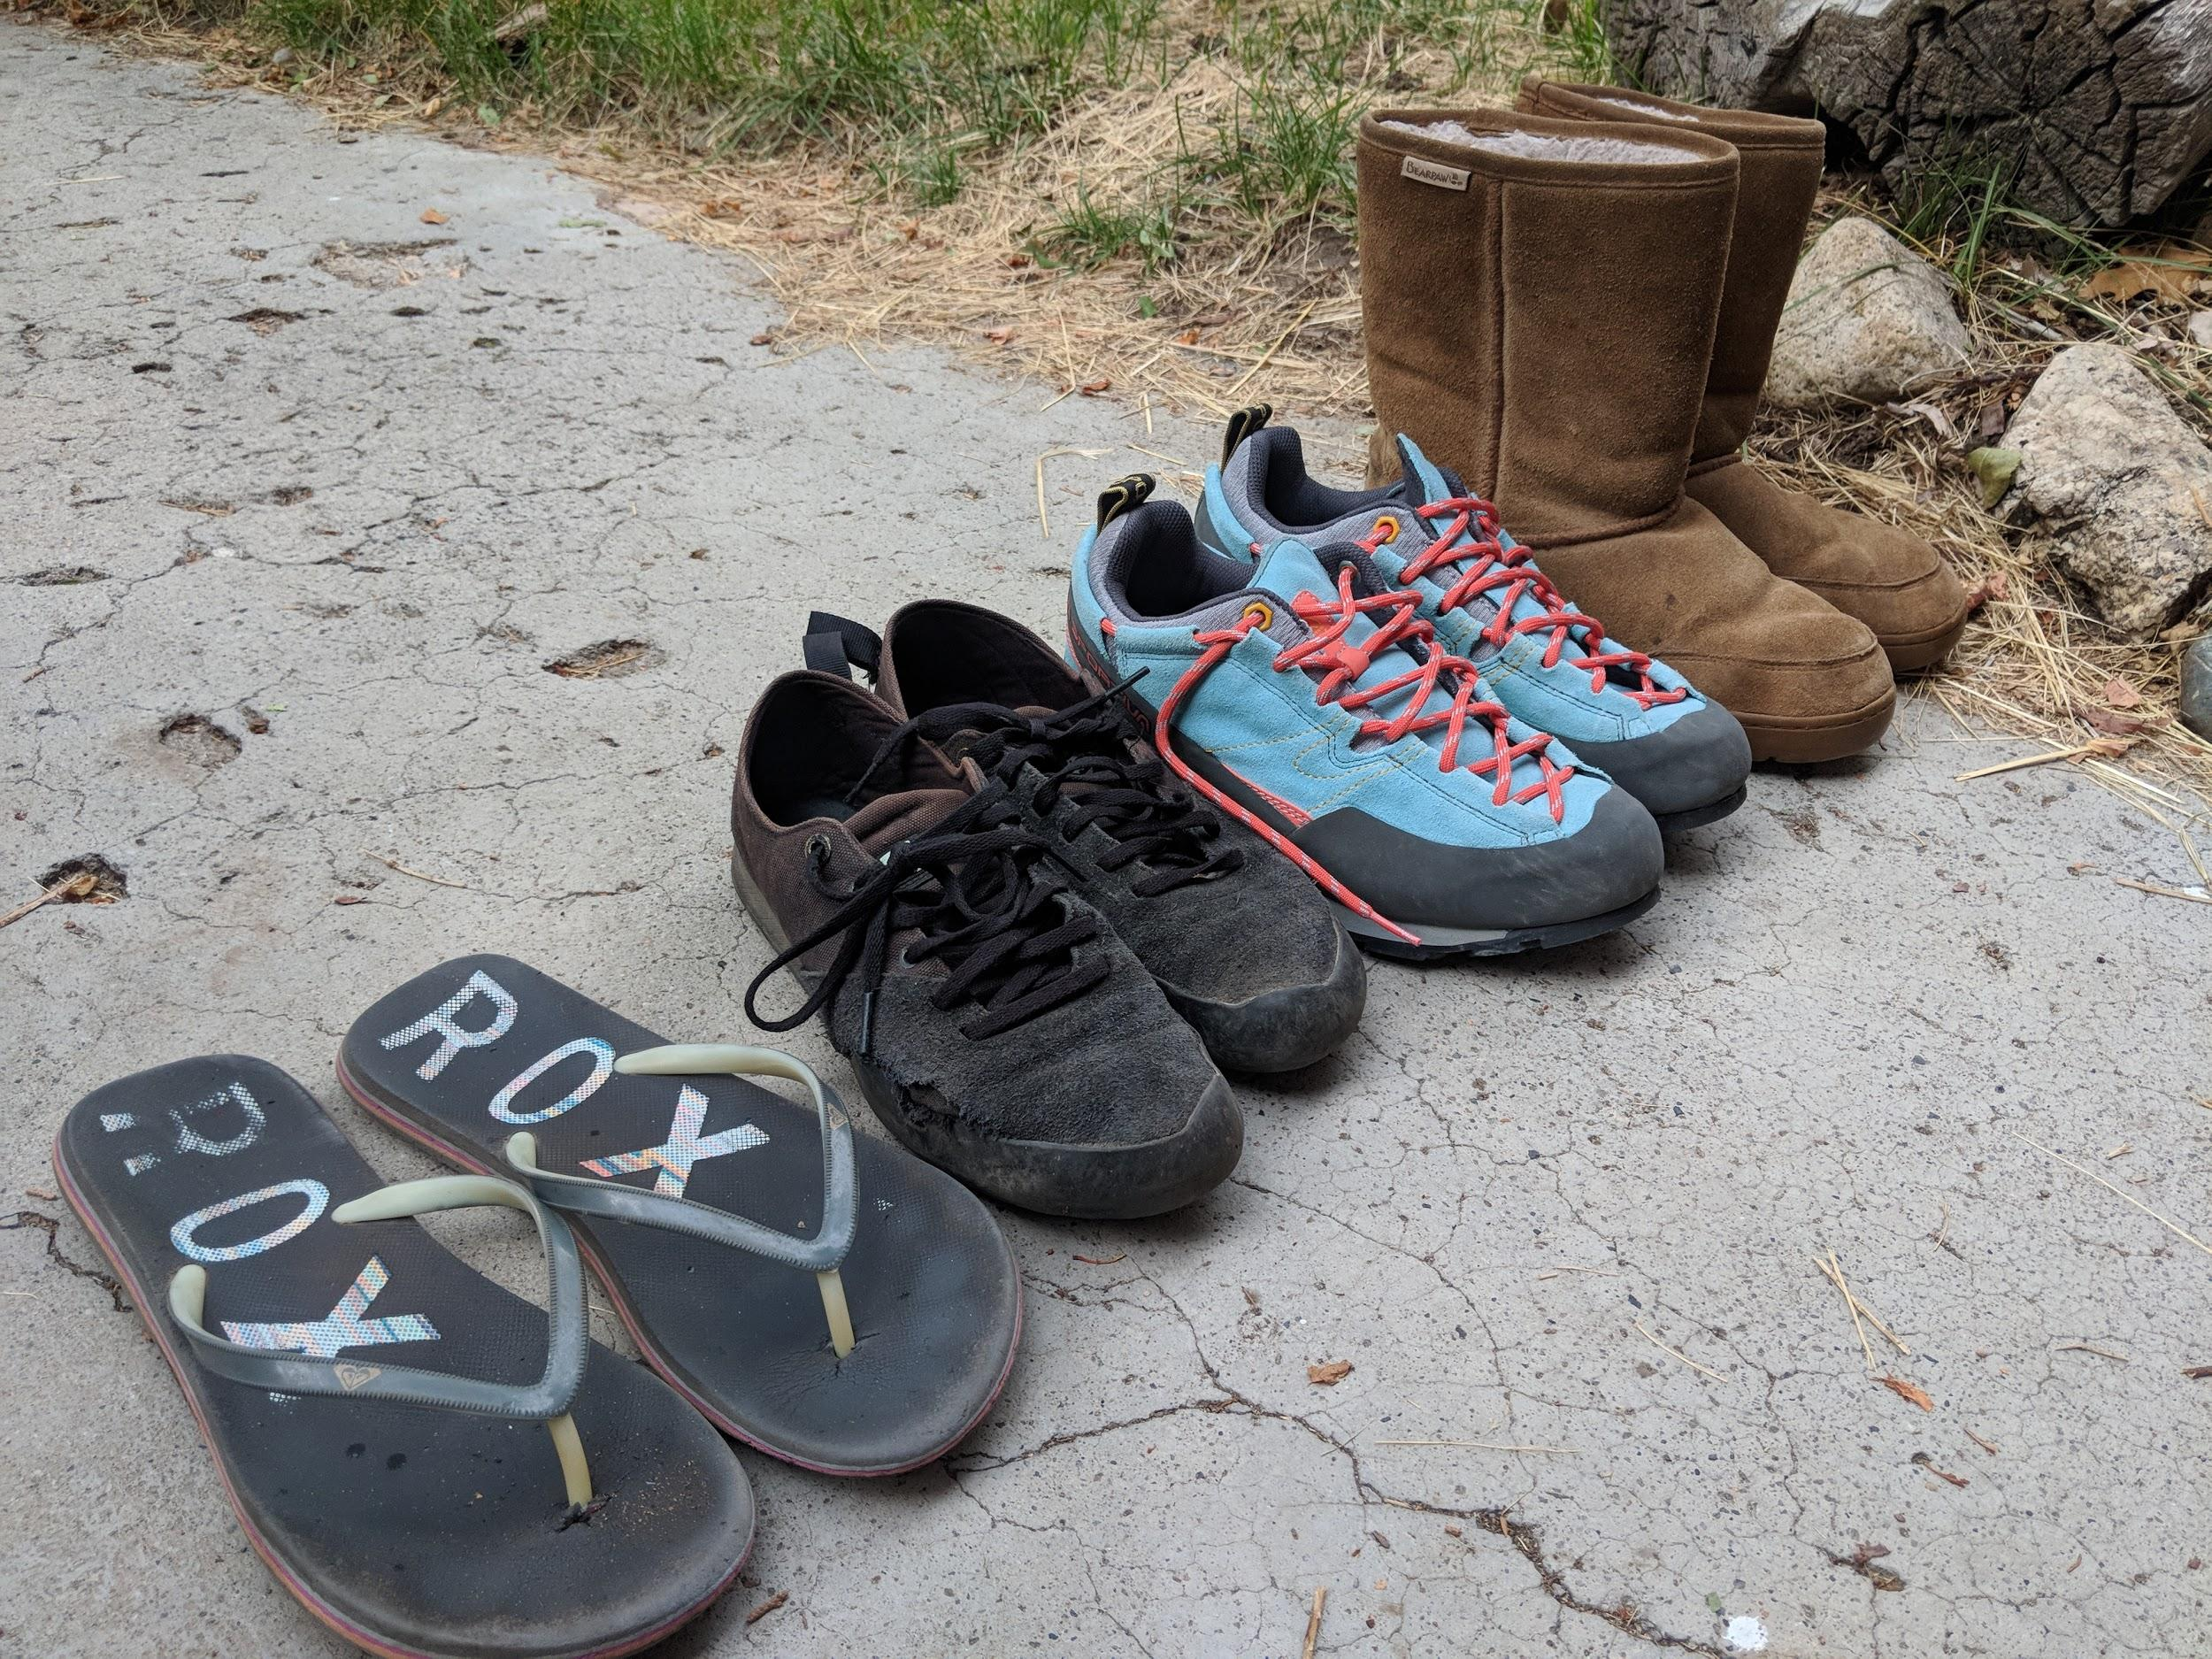 A Collection Of Approach Footware From Sandals To Ugg Boots